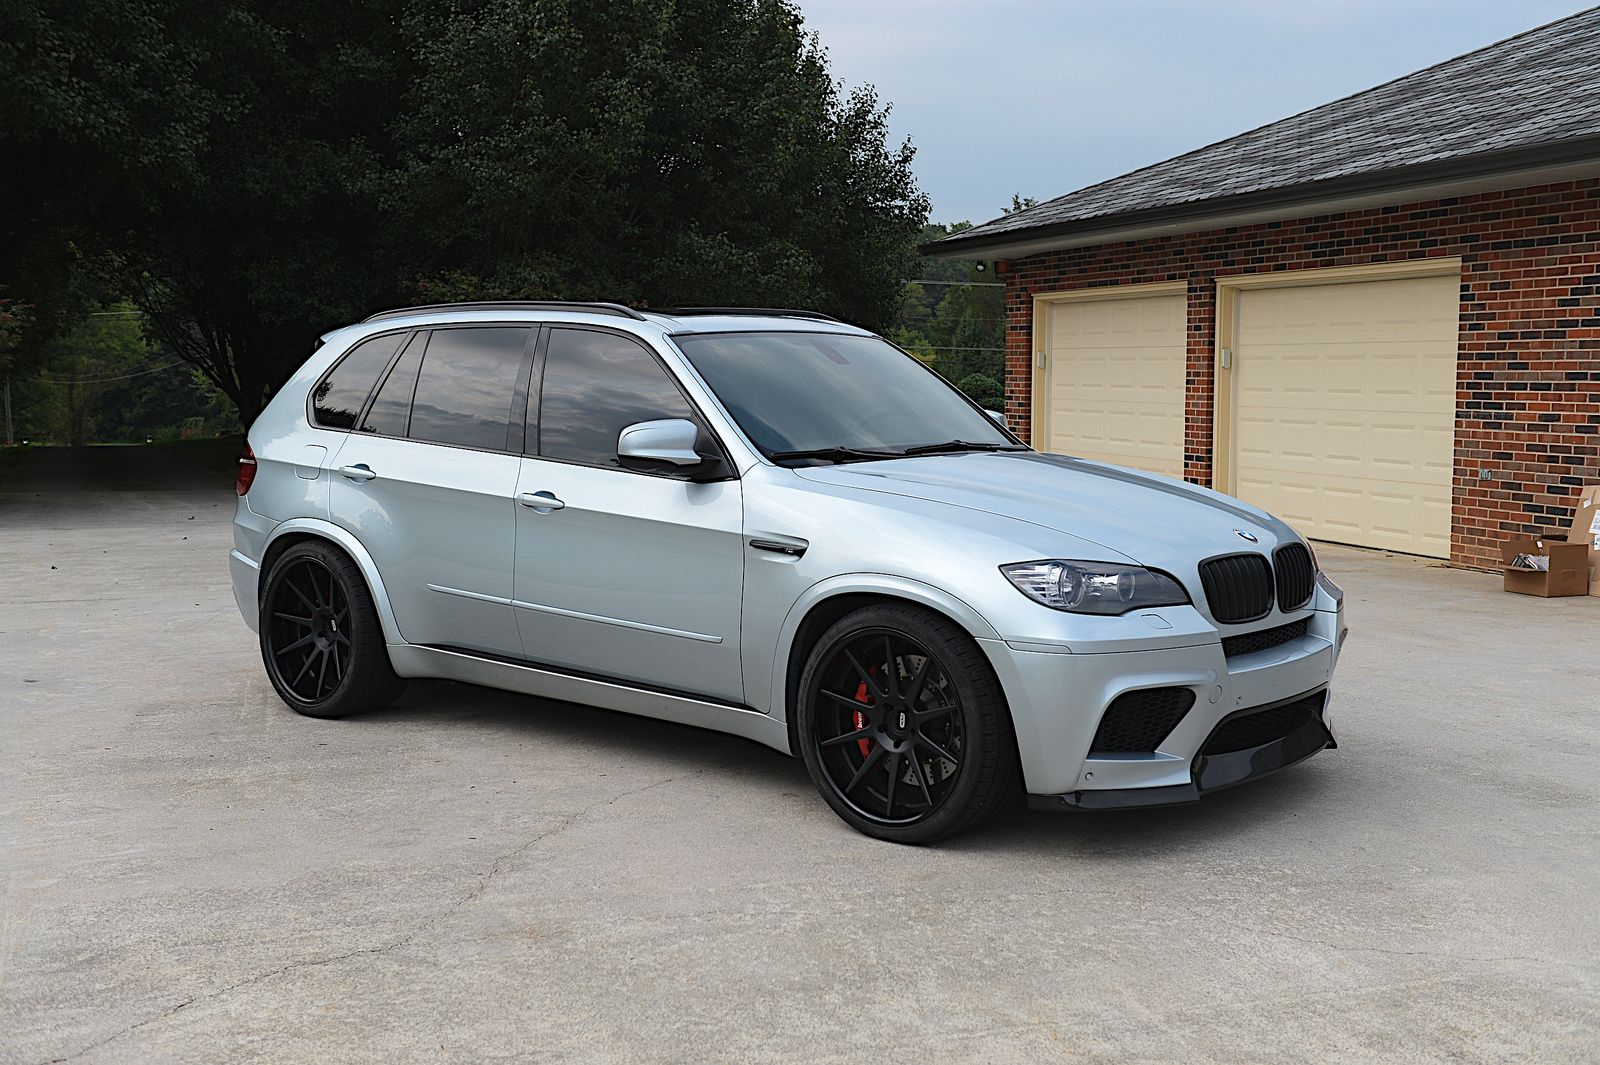 Image Result For Bmw X5m E70 Wrapped With Images Bmw X5 M Bmw